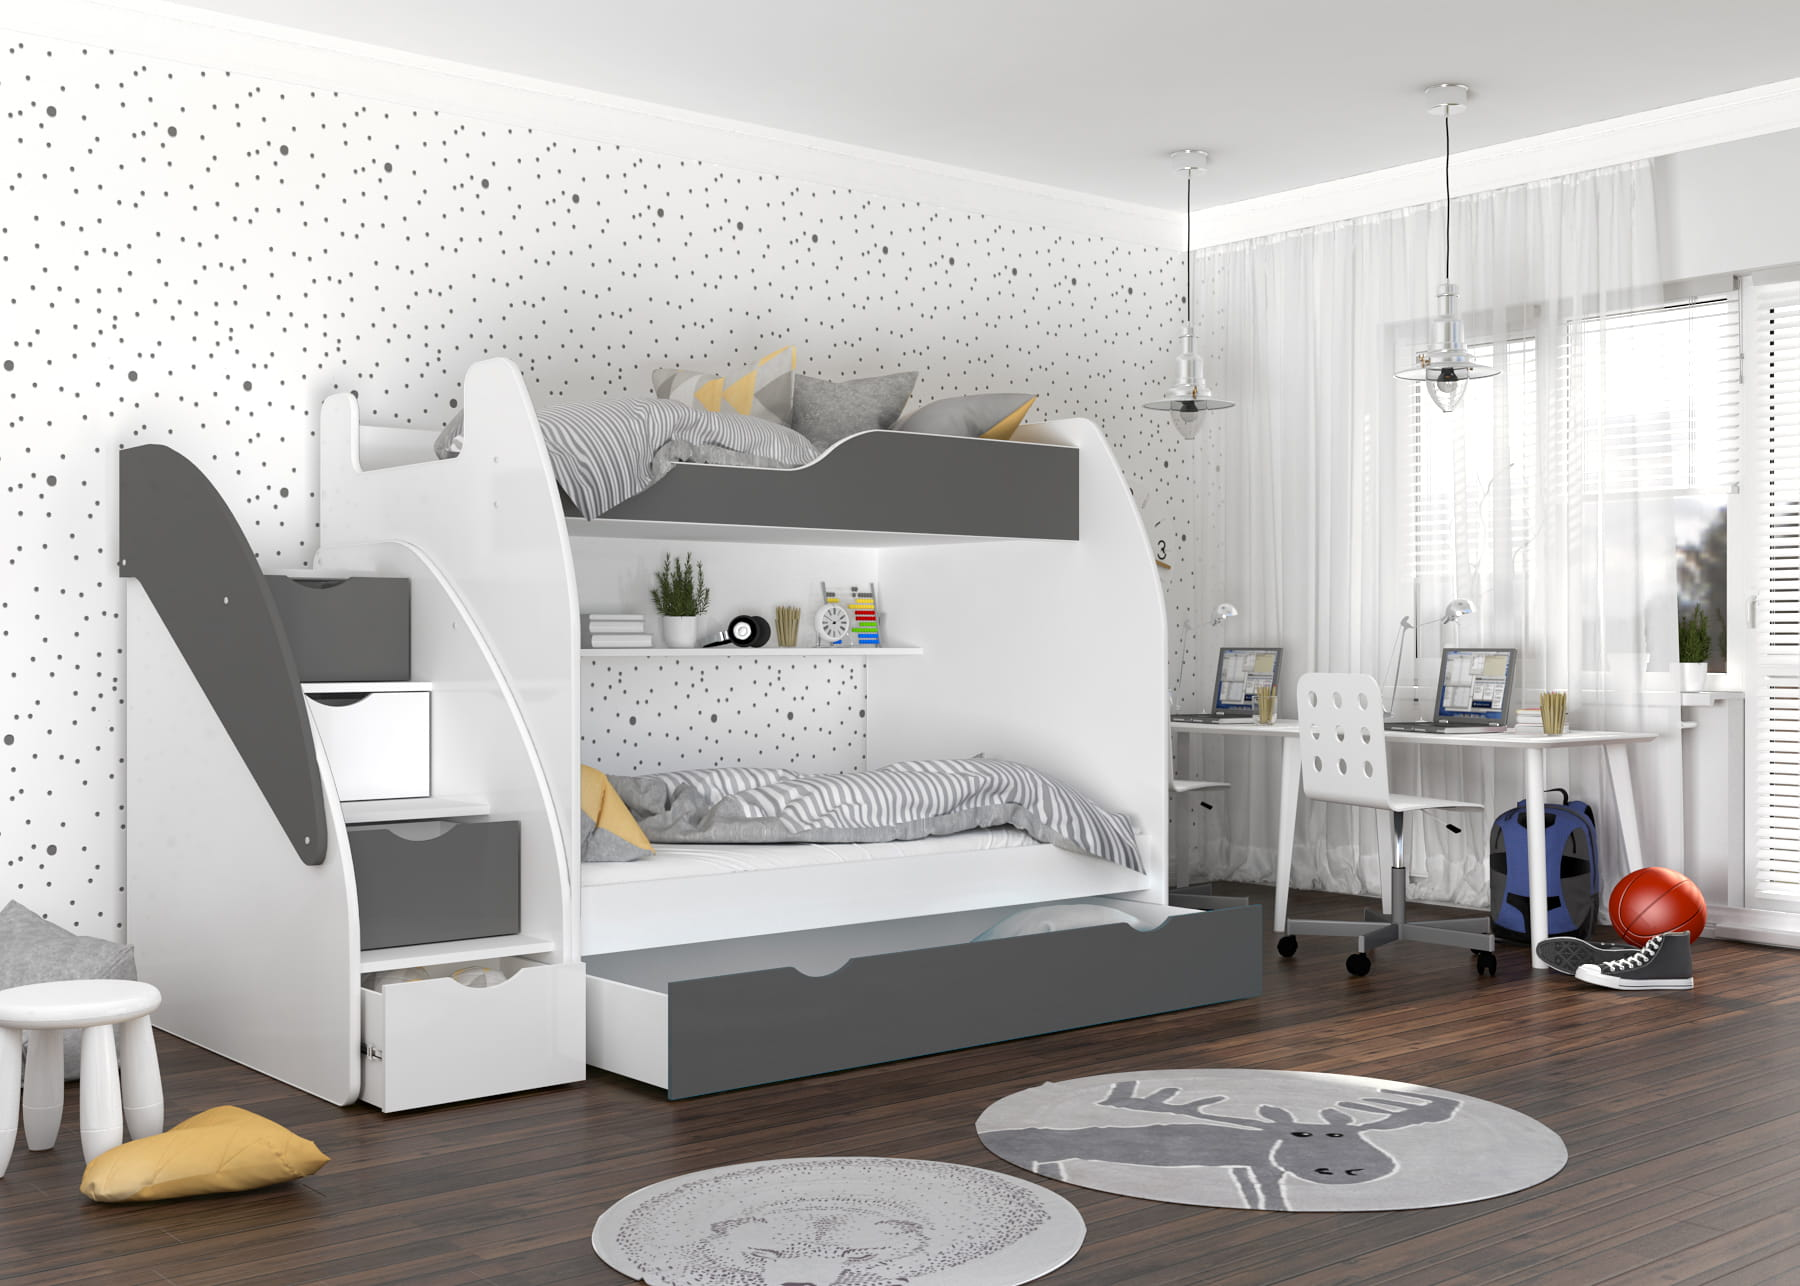 Stapelbed 4 Personen Bunk Bed Viki 1 1 1